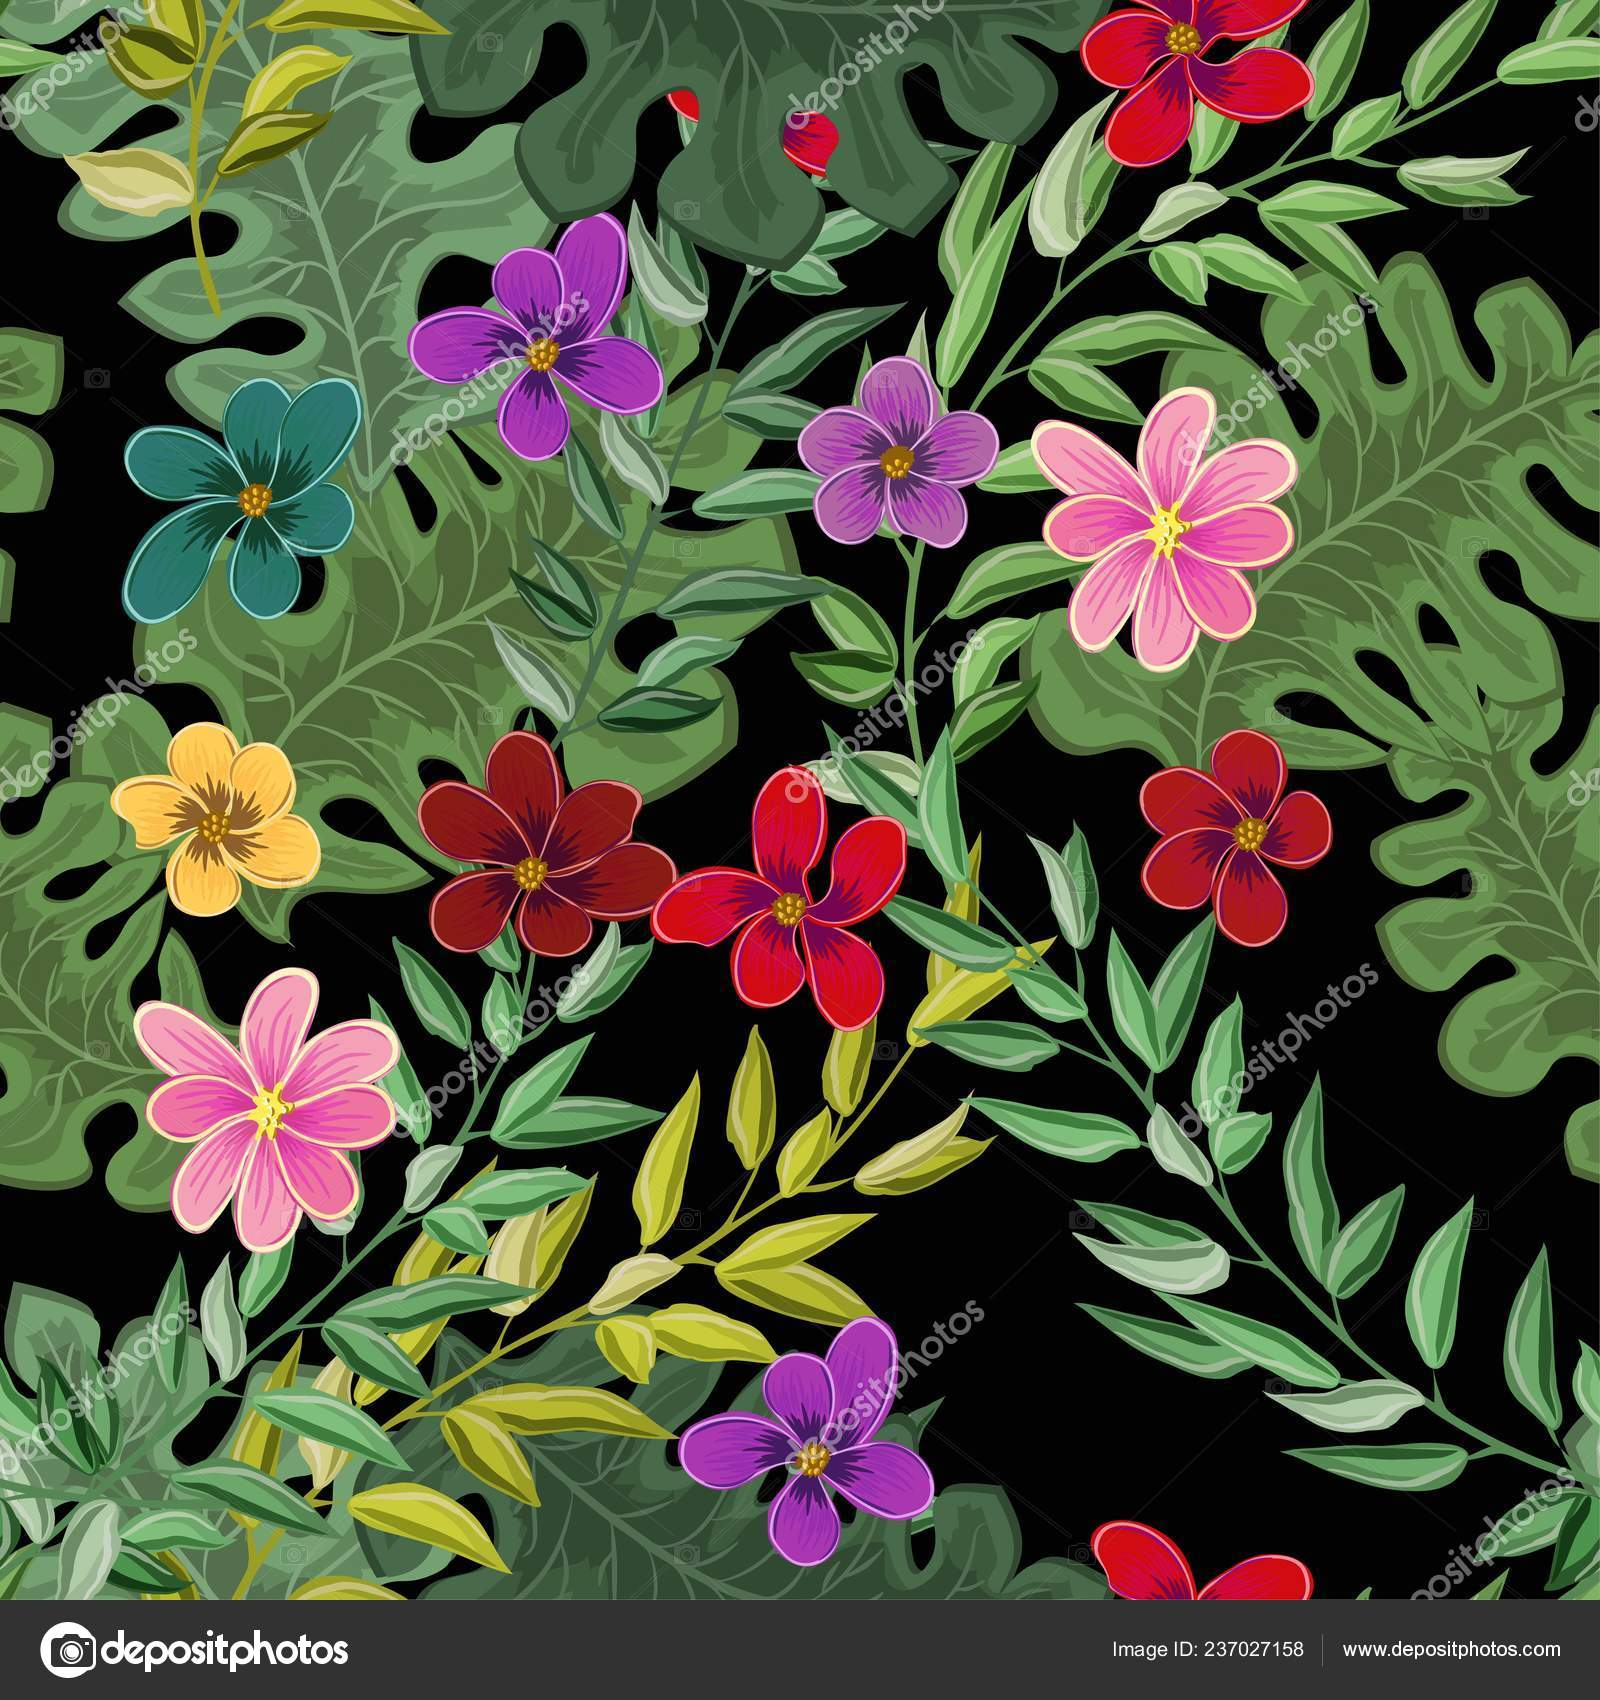 Beach Cheerful Seamless Pattern Wallpaper Tropical Dark Green Leaves Palm Stock Vector C Graffiti21 237027158 Find & download free graphic resources for tropical green leaves. https depositphotos com 237027158 stock illustration beach cheerful seamless pattern wallpaper html